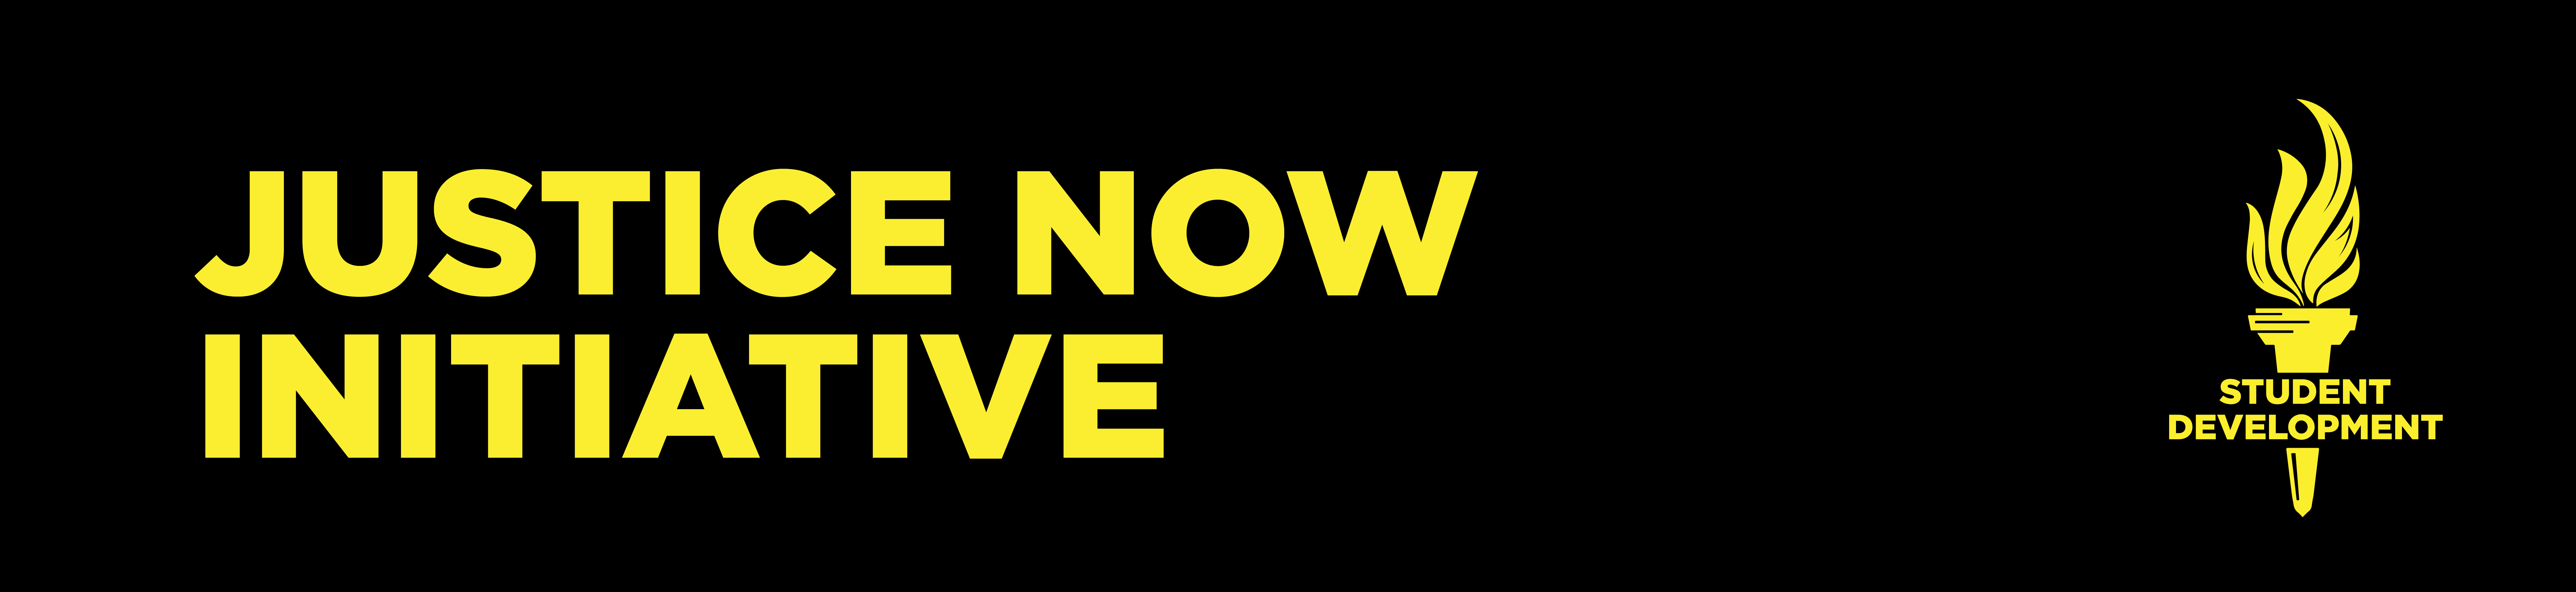 Justice Now Initiative